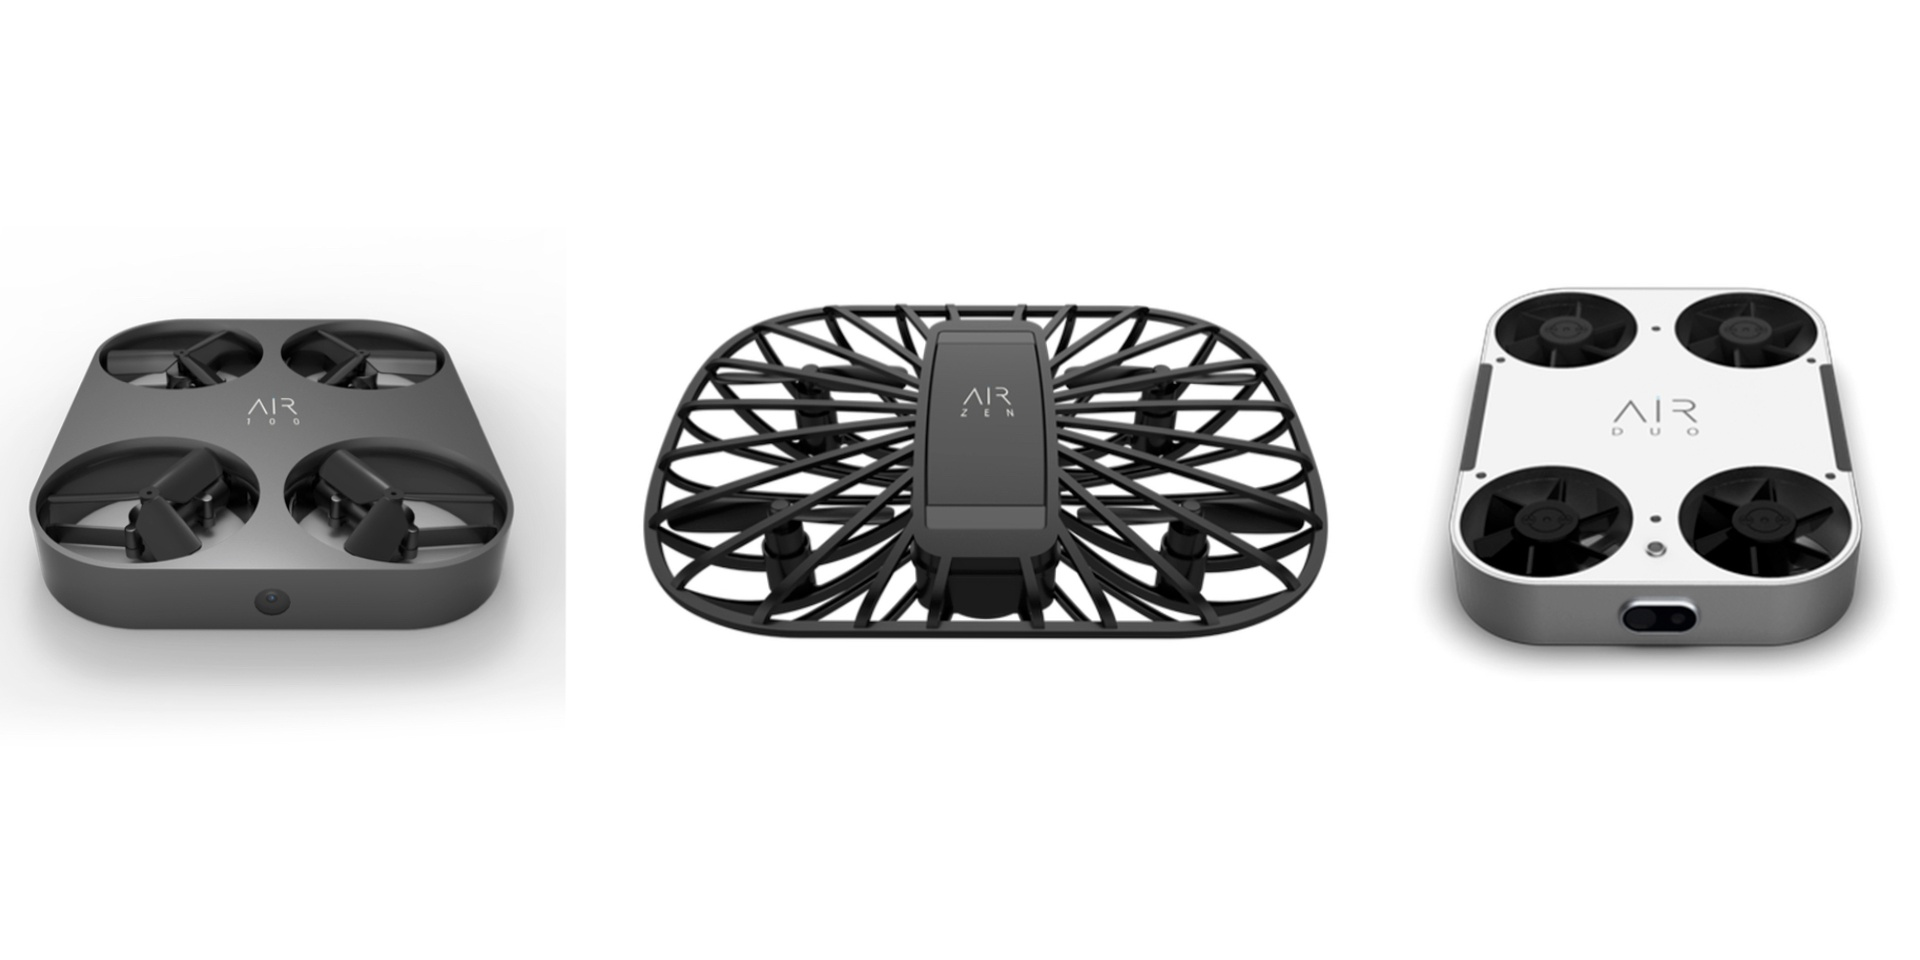 AirSelfie introduces three new drones at CES 2019